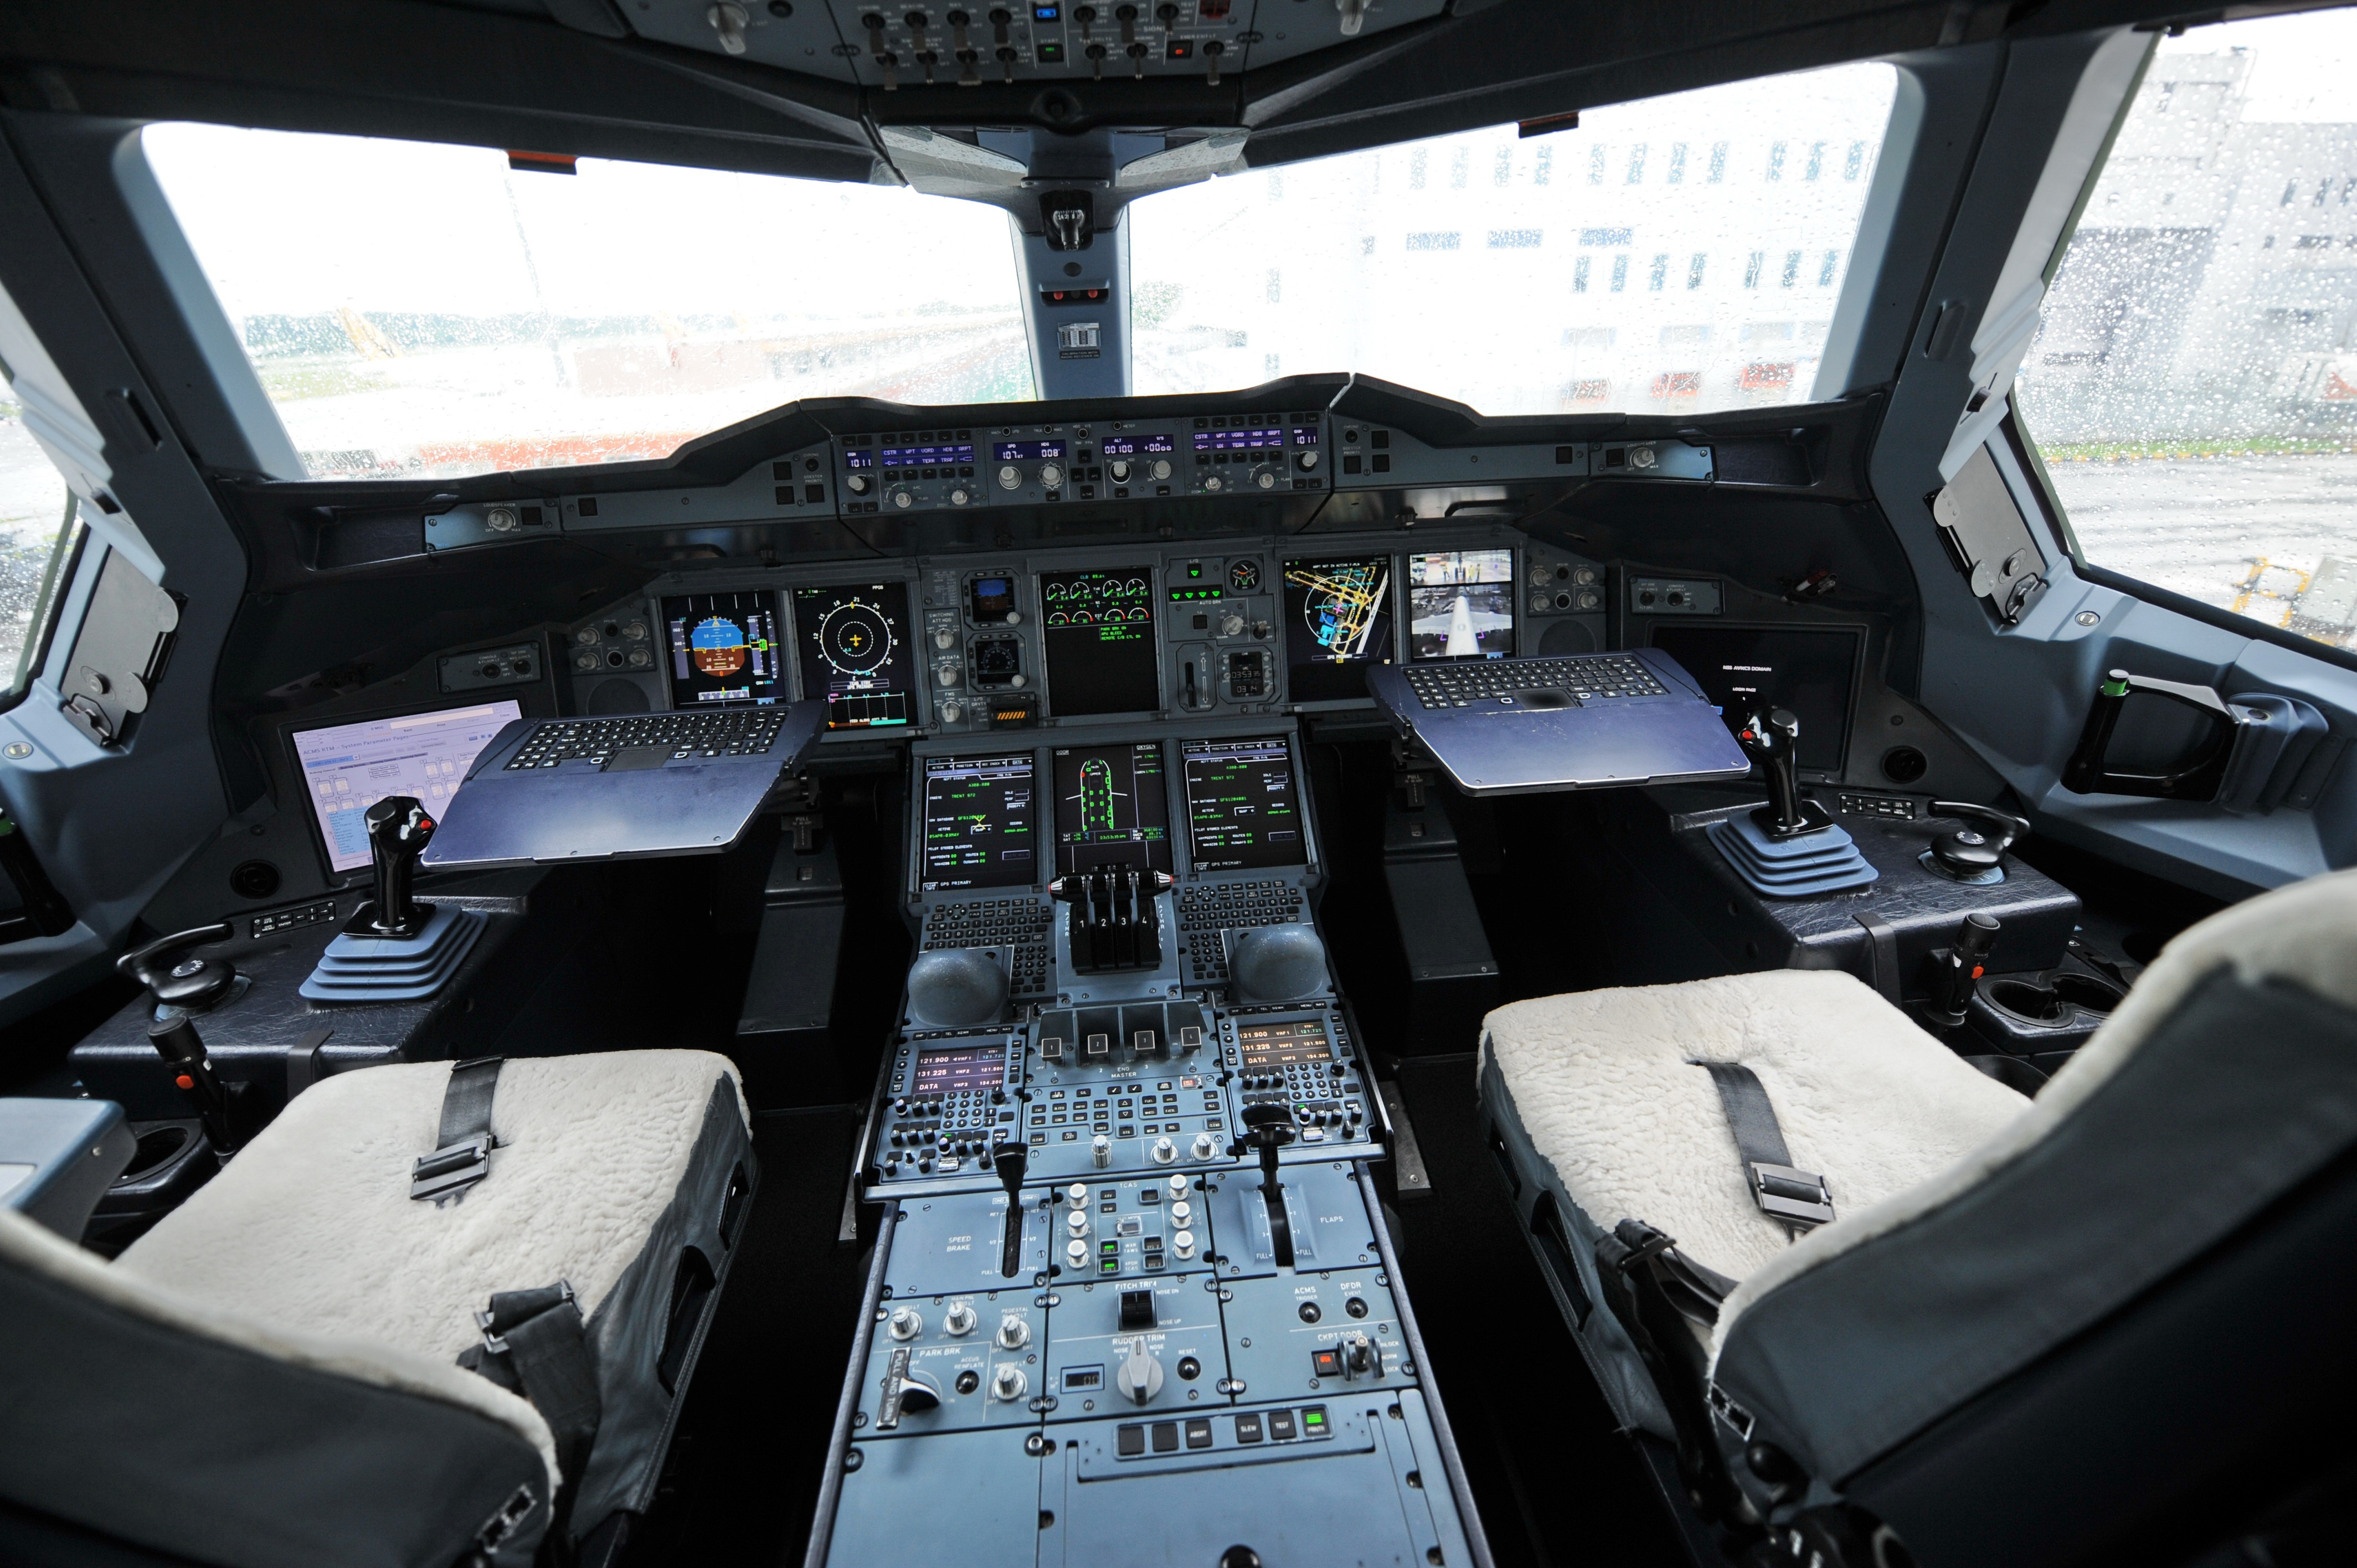 The cockpit of the Qantas Airbus A380 je